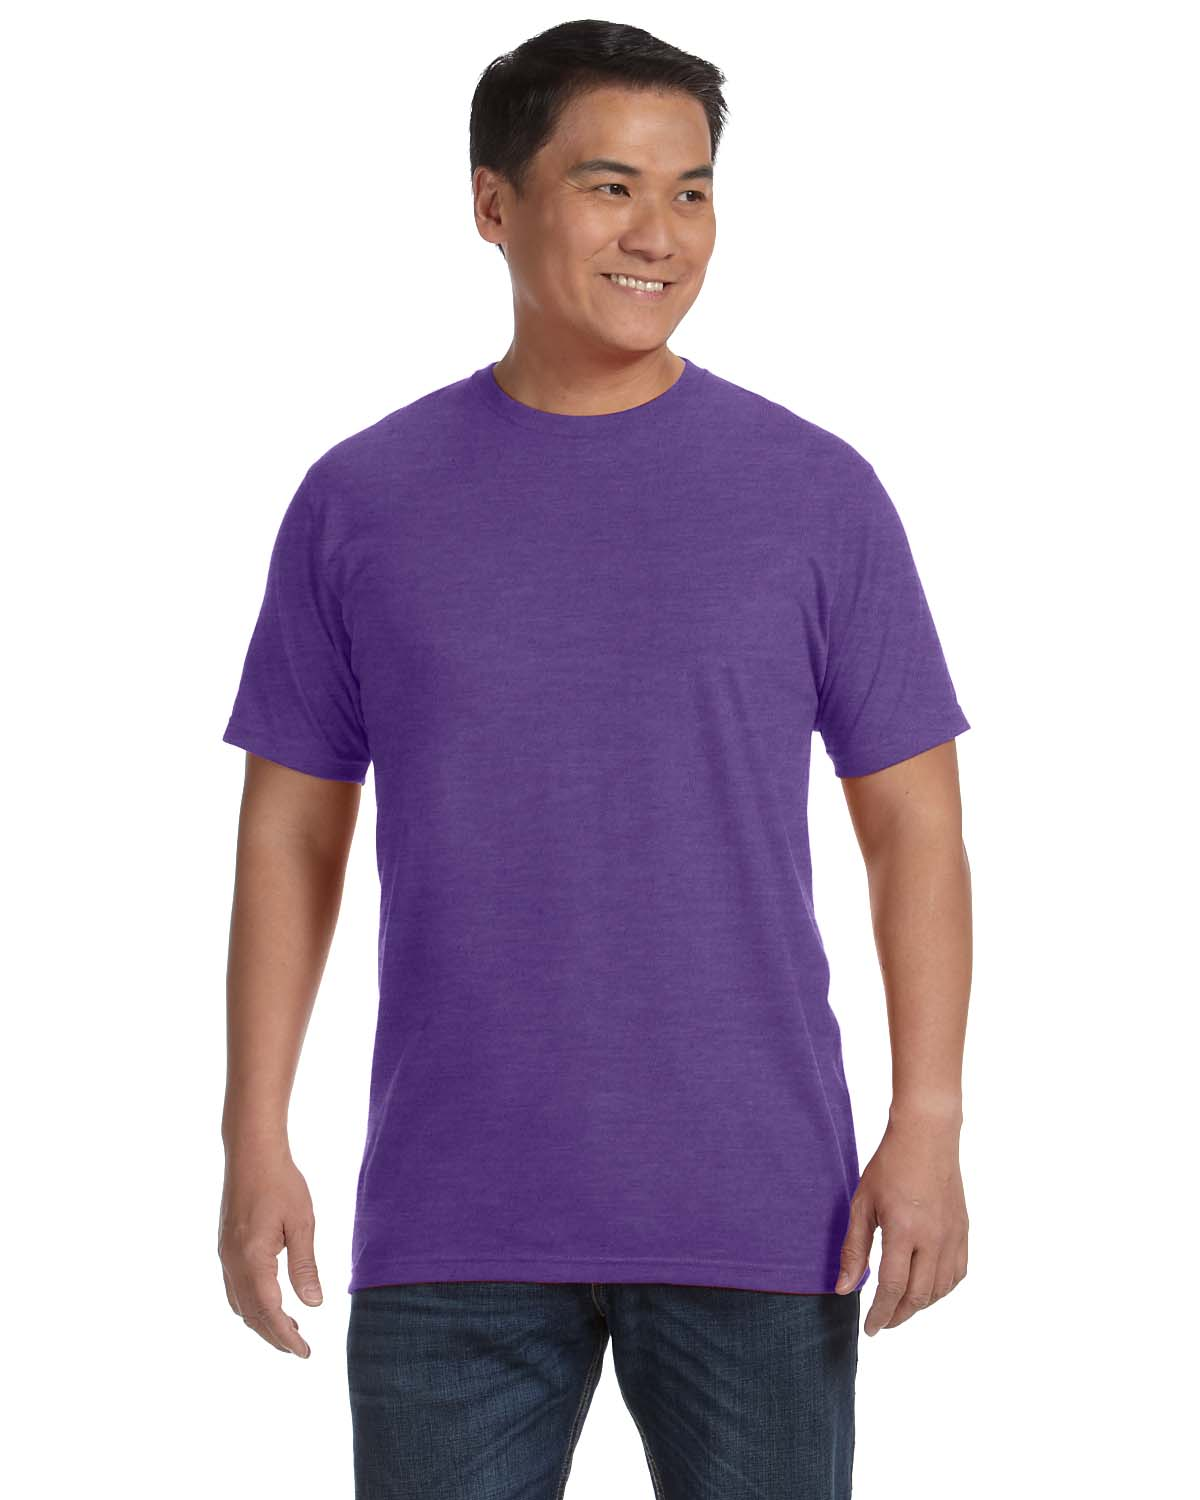 Anvil Organic Ringspunrecycled Polyester T Shirt Short Sleeve T